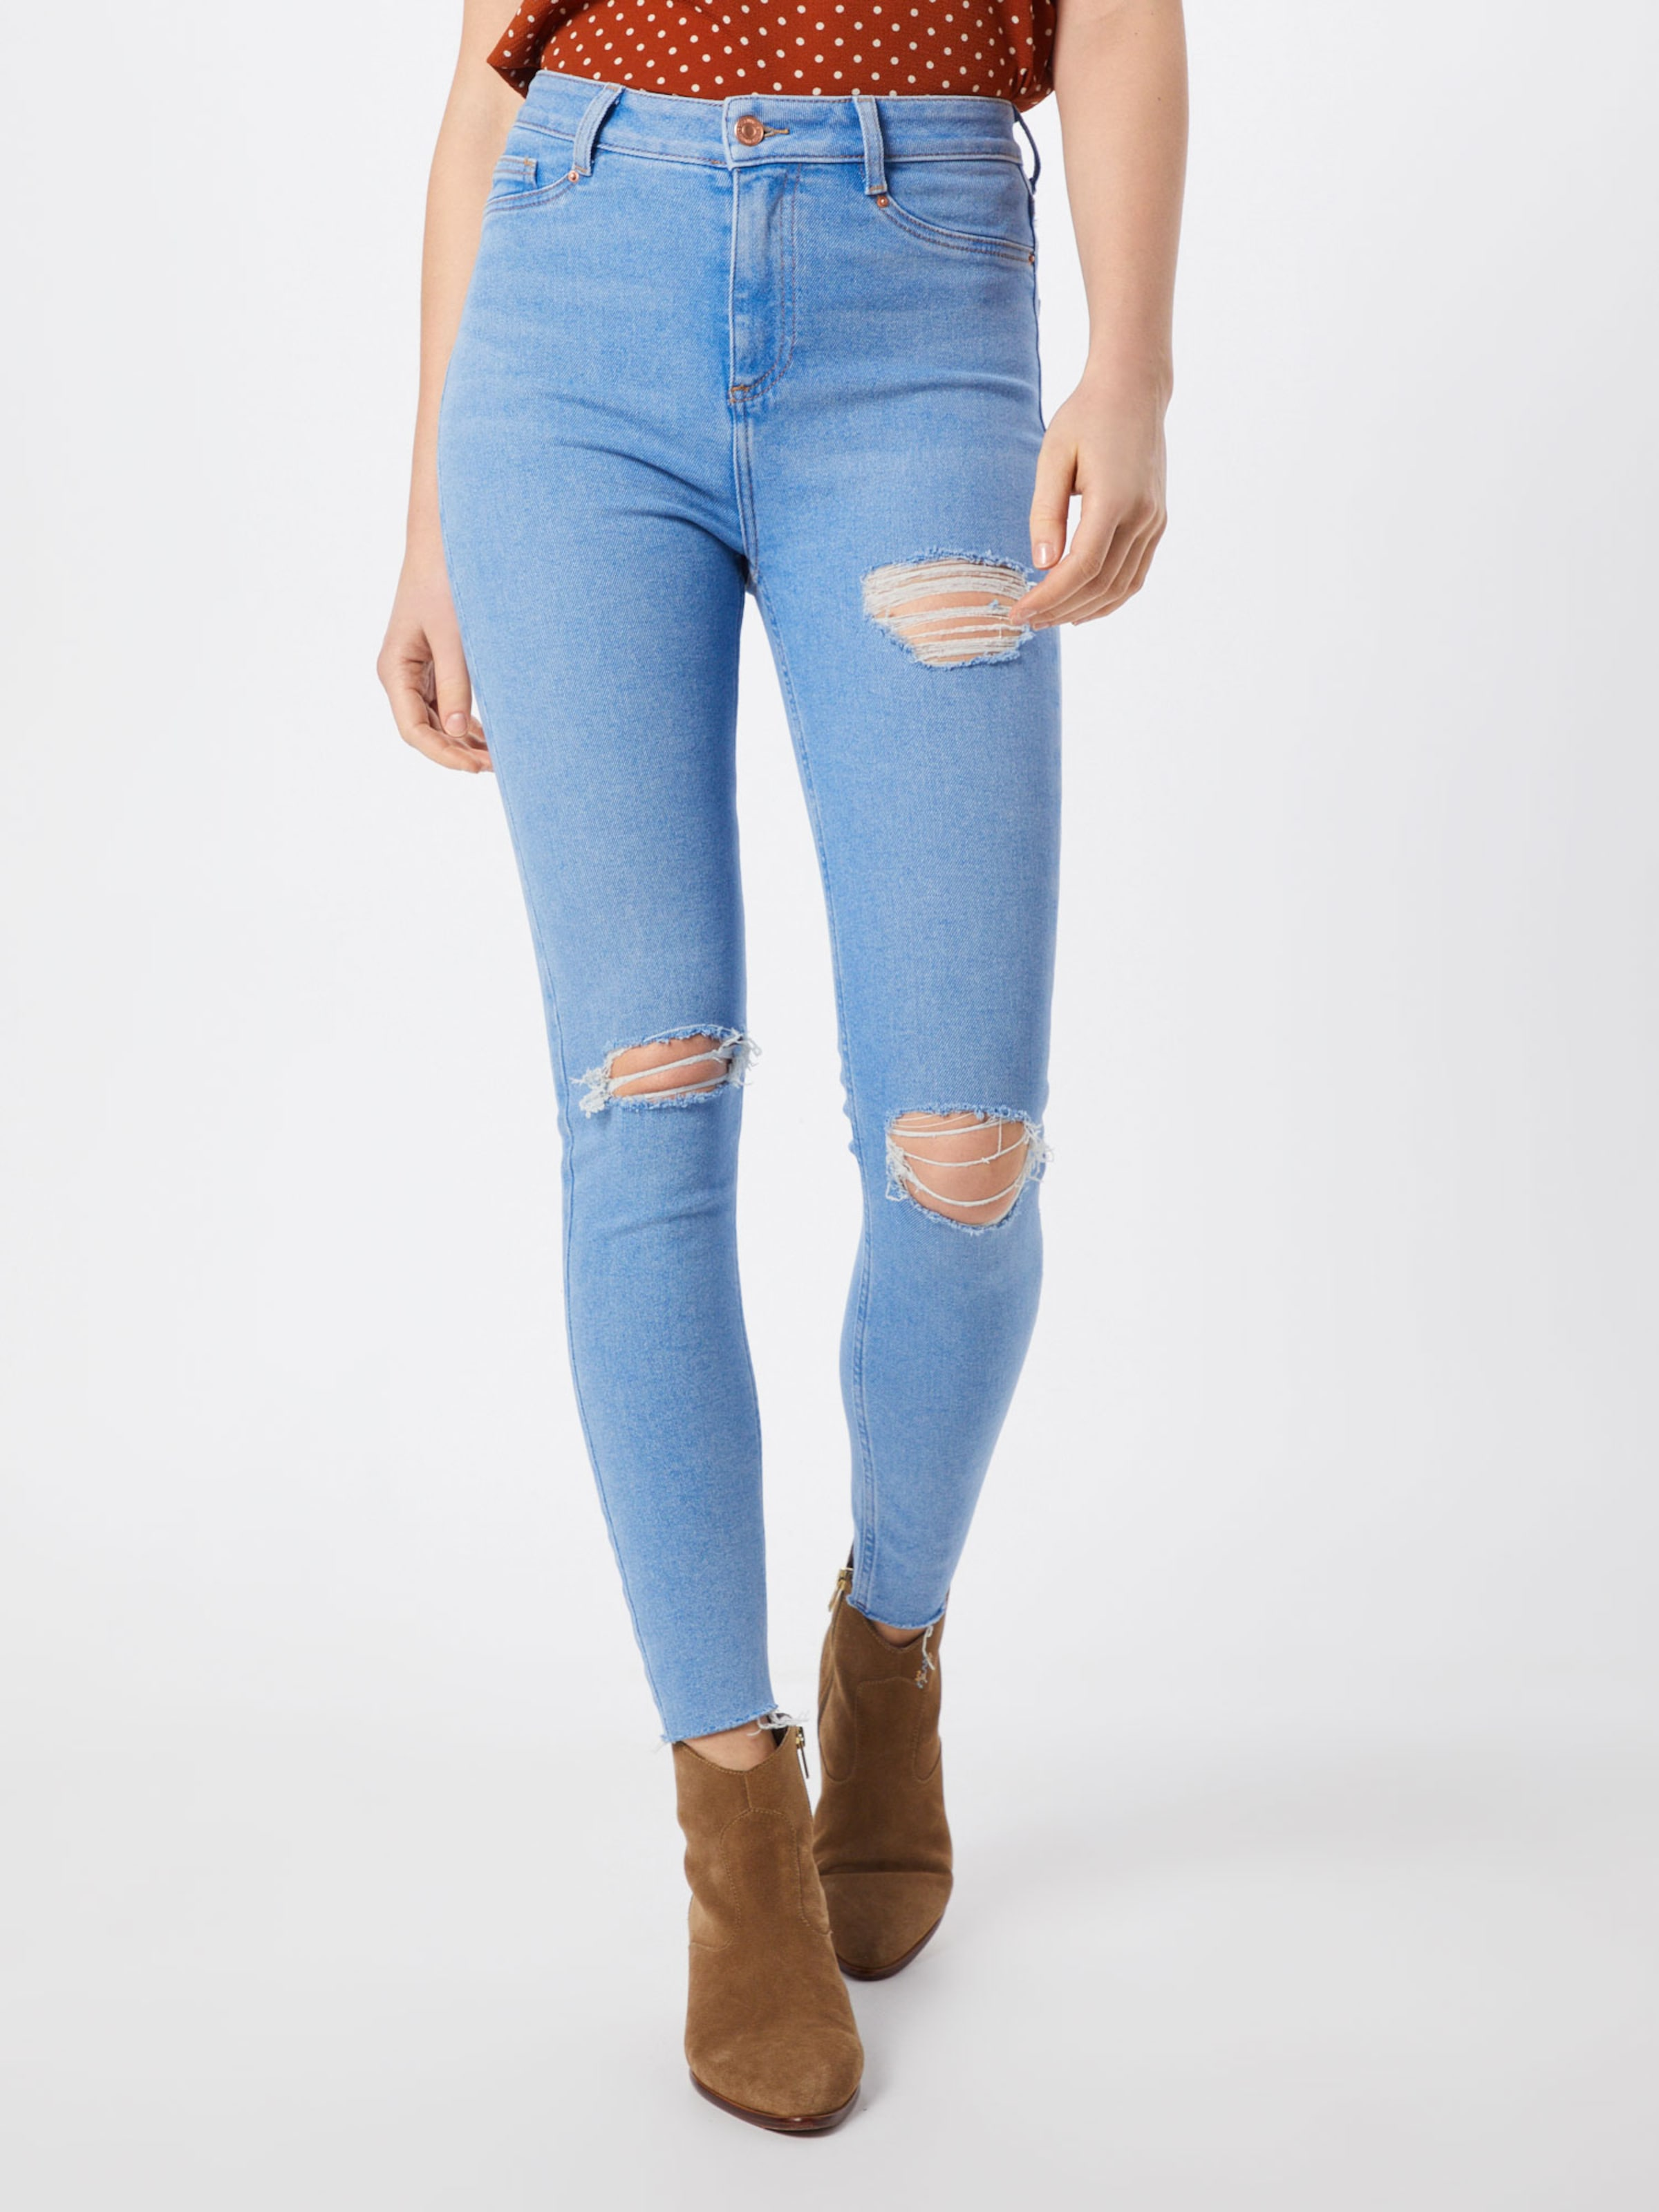 In New Disco' Bright Look Thigh Rip Denim Blauw Jeggings 'rosie Gap 7gvbfyY6